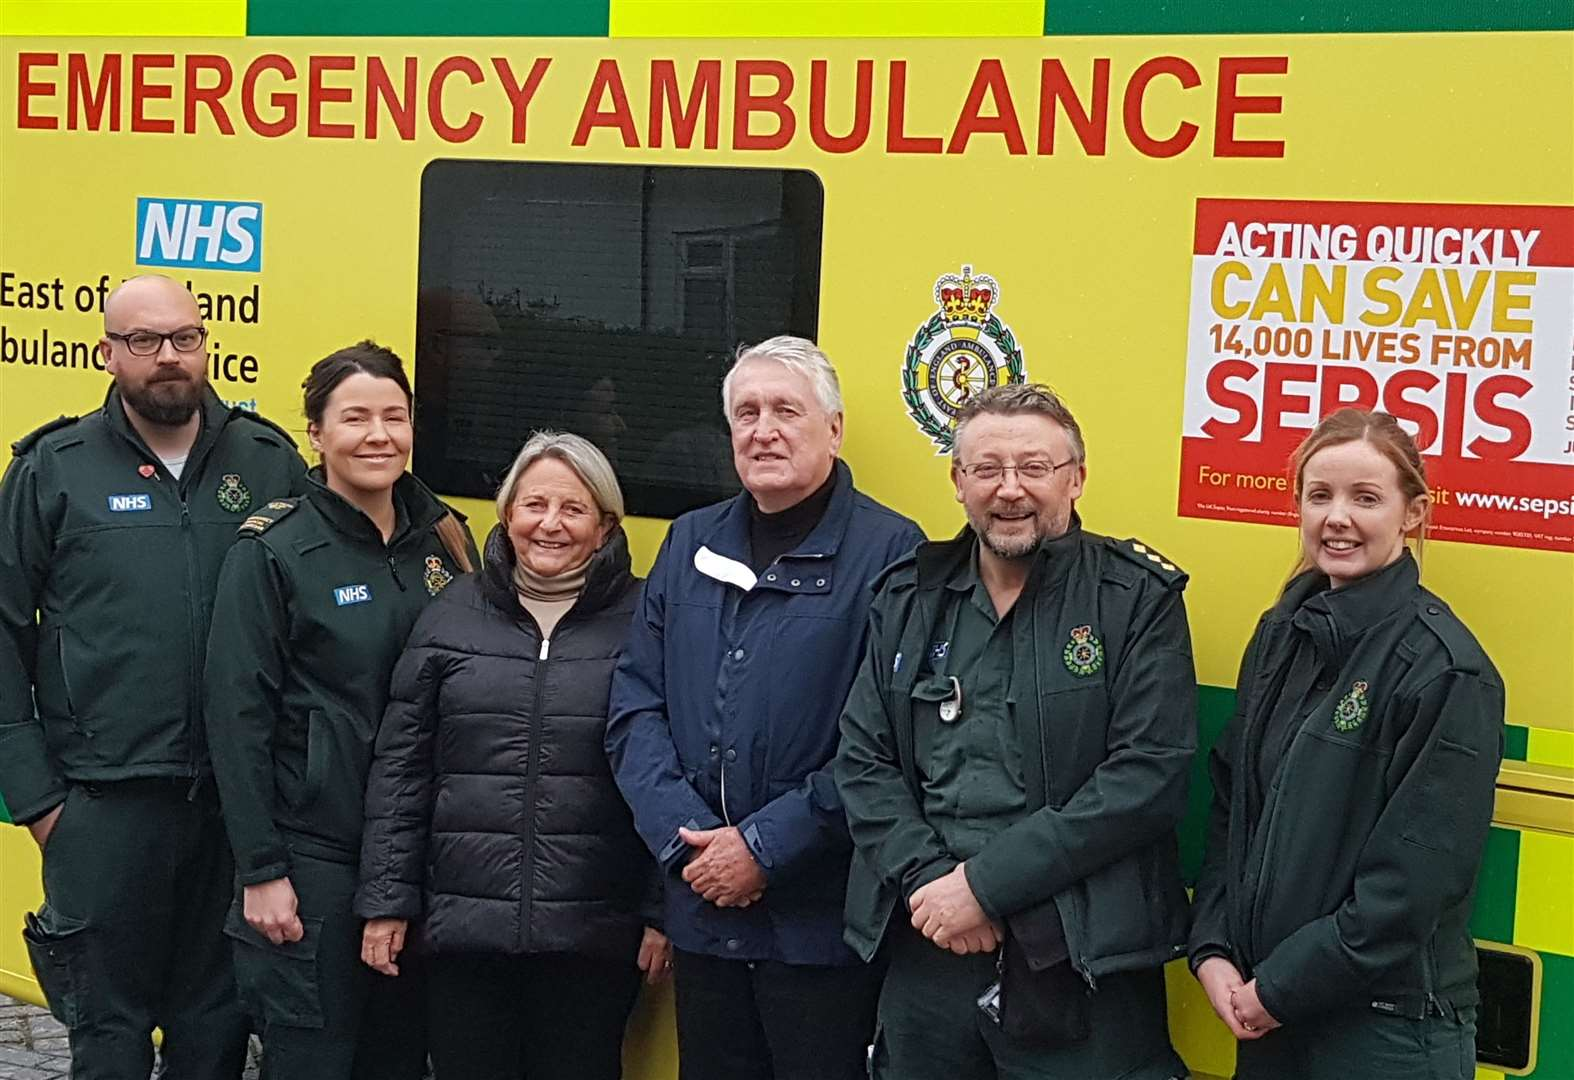 Bury St Edmunds woman praises life-saving response of husband and ambulance service after suffering cardiac arrest